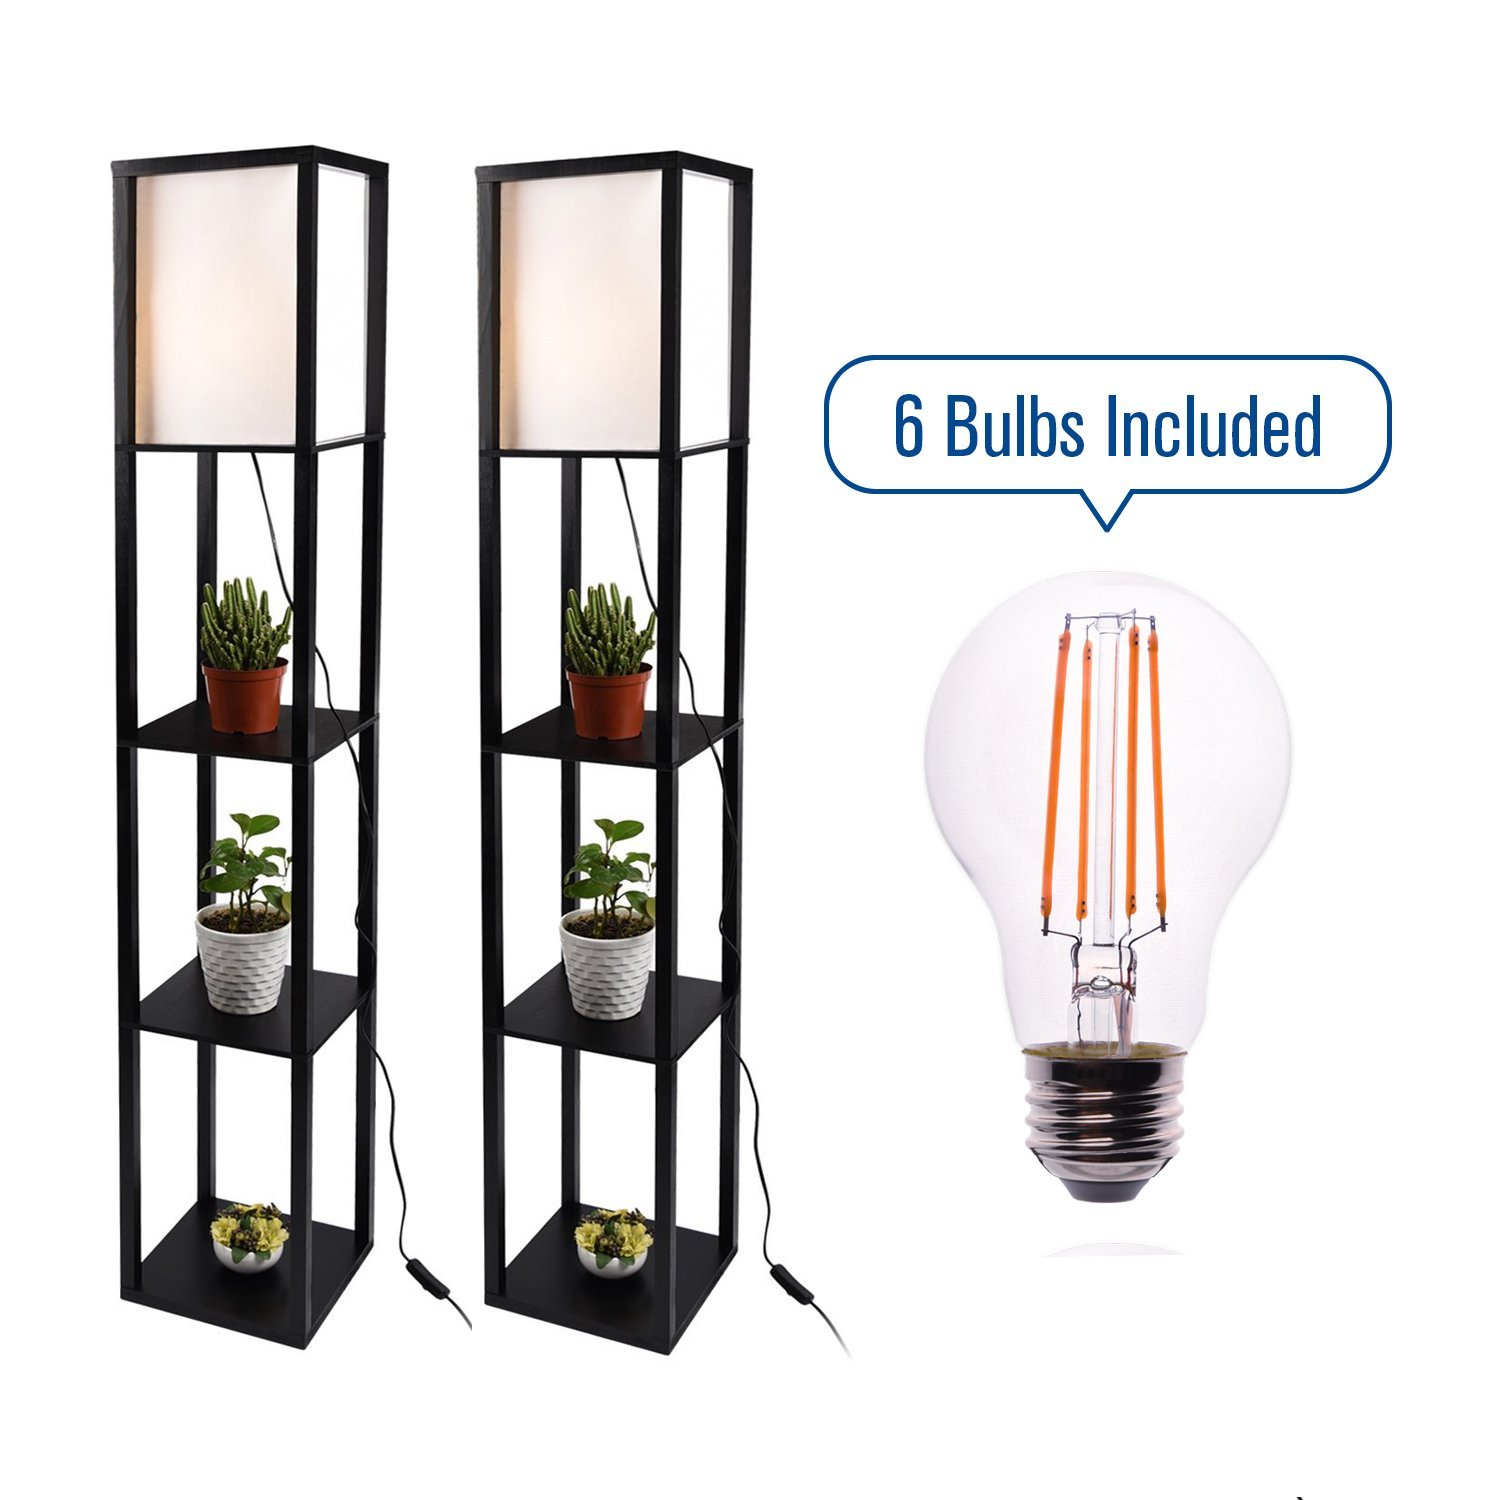 Shelf Floor Lamp with Linen Shade, Set of 2, UL Listed, Black Wooden Frame, 63 Inch Height, Switch on/off, Etagere Organizer Shelf, with 7W Dimmable LED Edison Light Bulbs by PULUOMIS